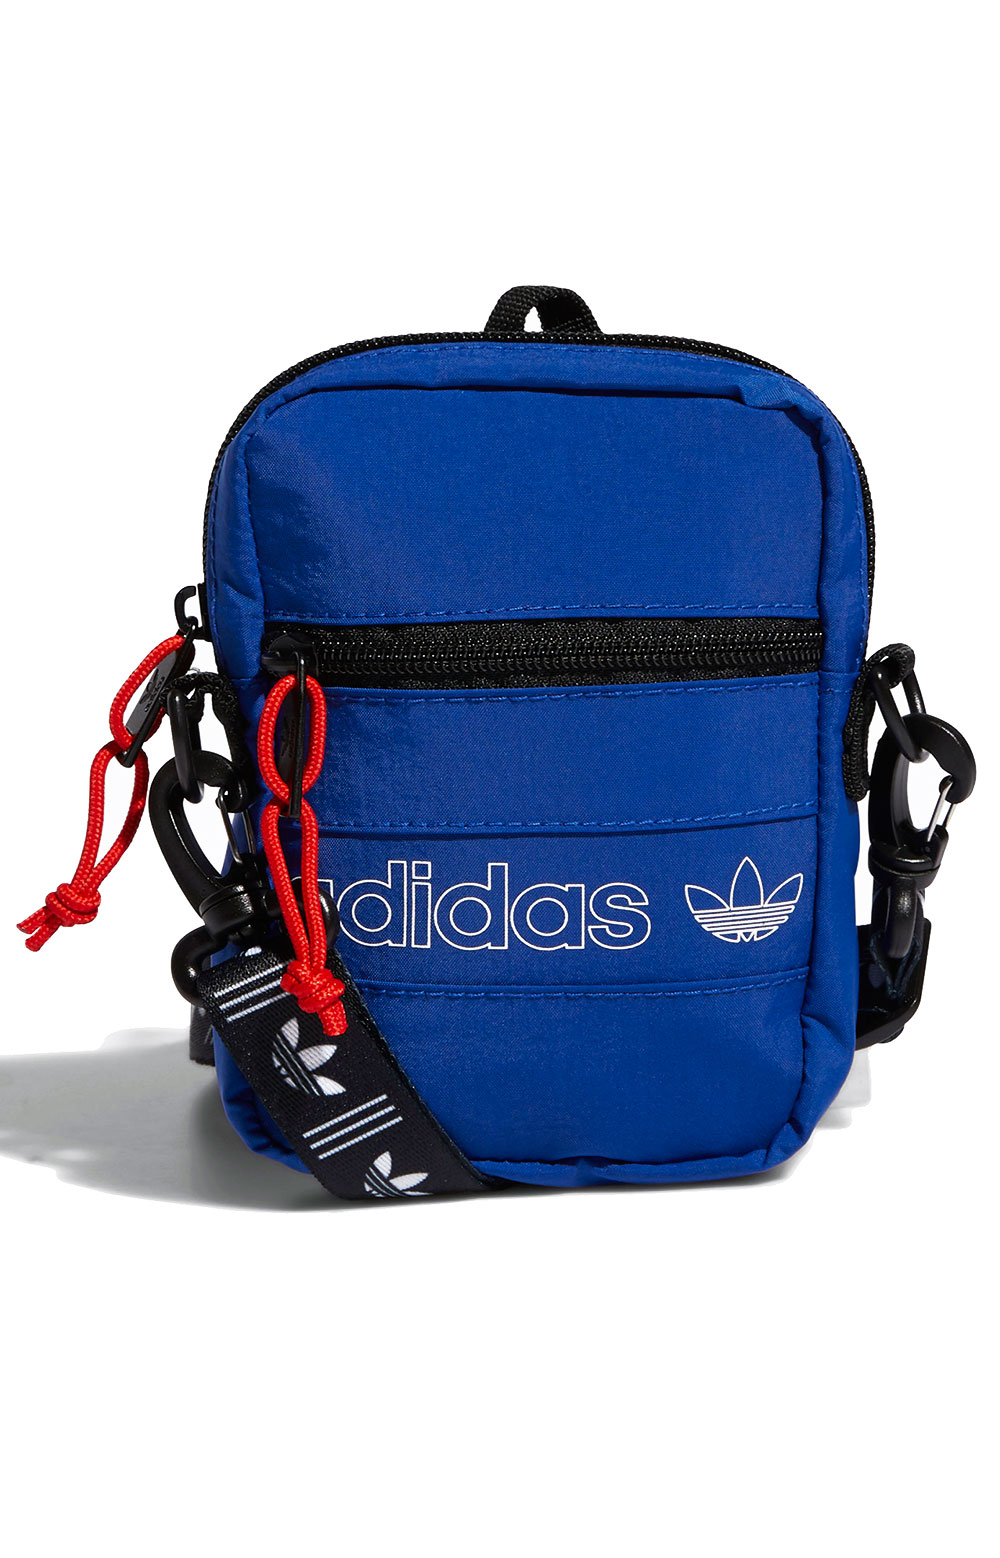 Originals Festival Crossbody Bag - Team Royal Blue